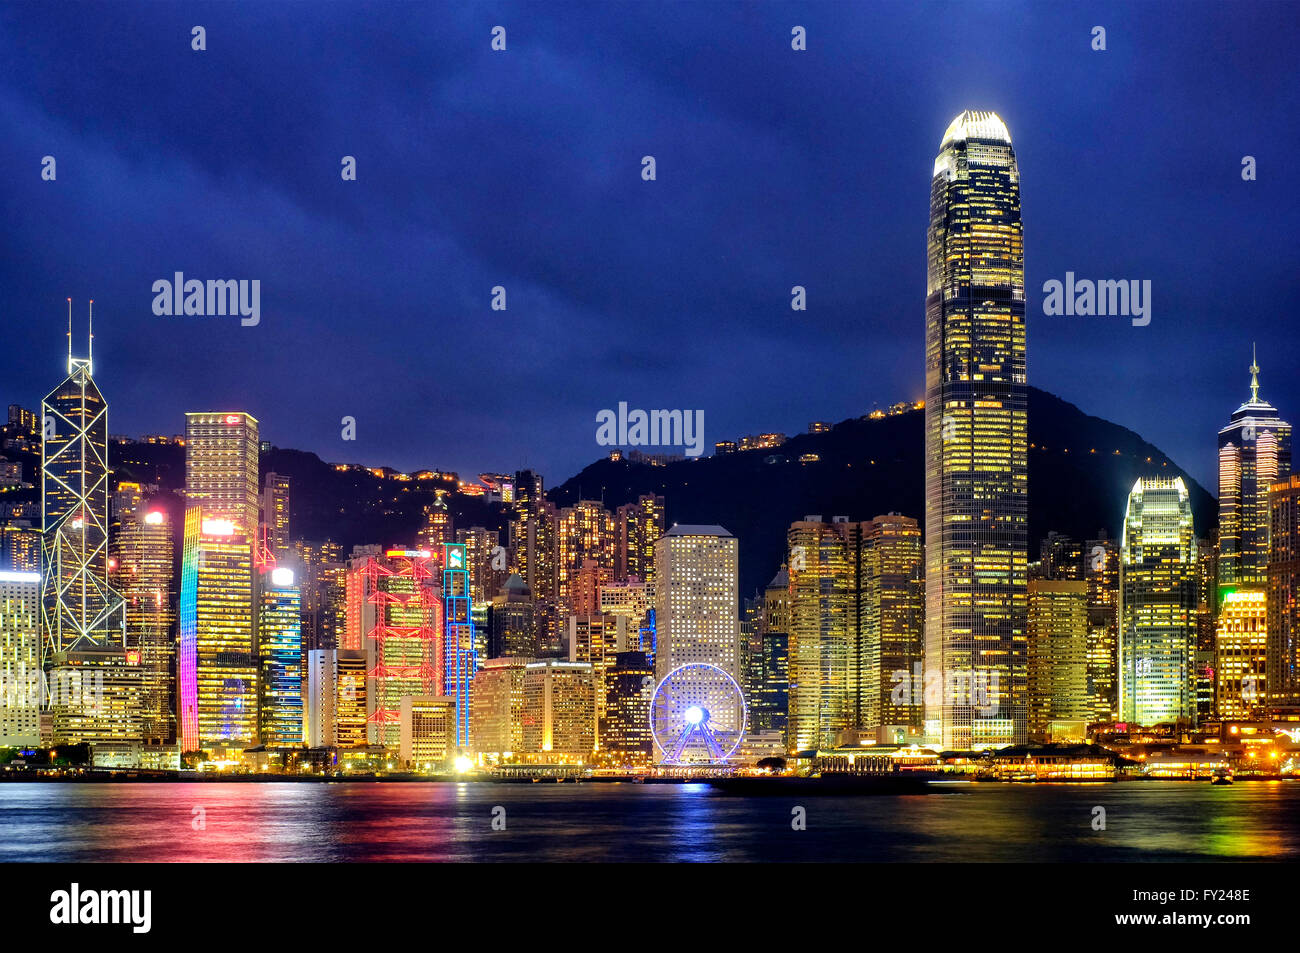 L'île de Hong Kong skyline de Victoria Harbour, Hong Kong, Chine Photo Stock